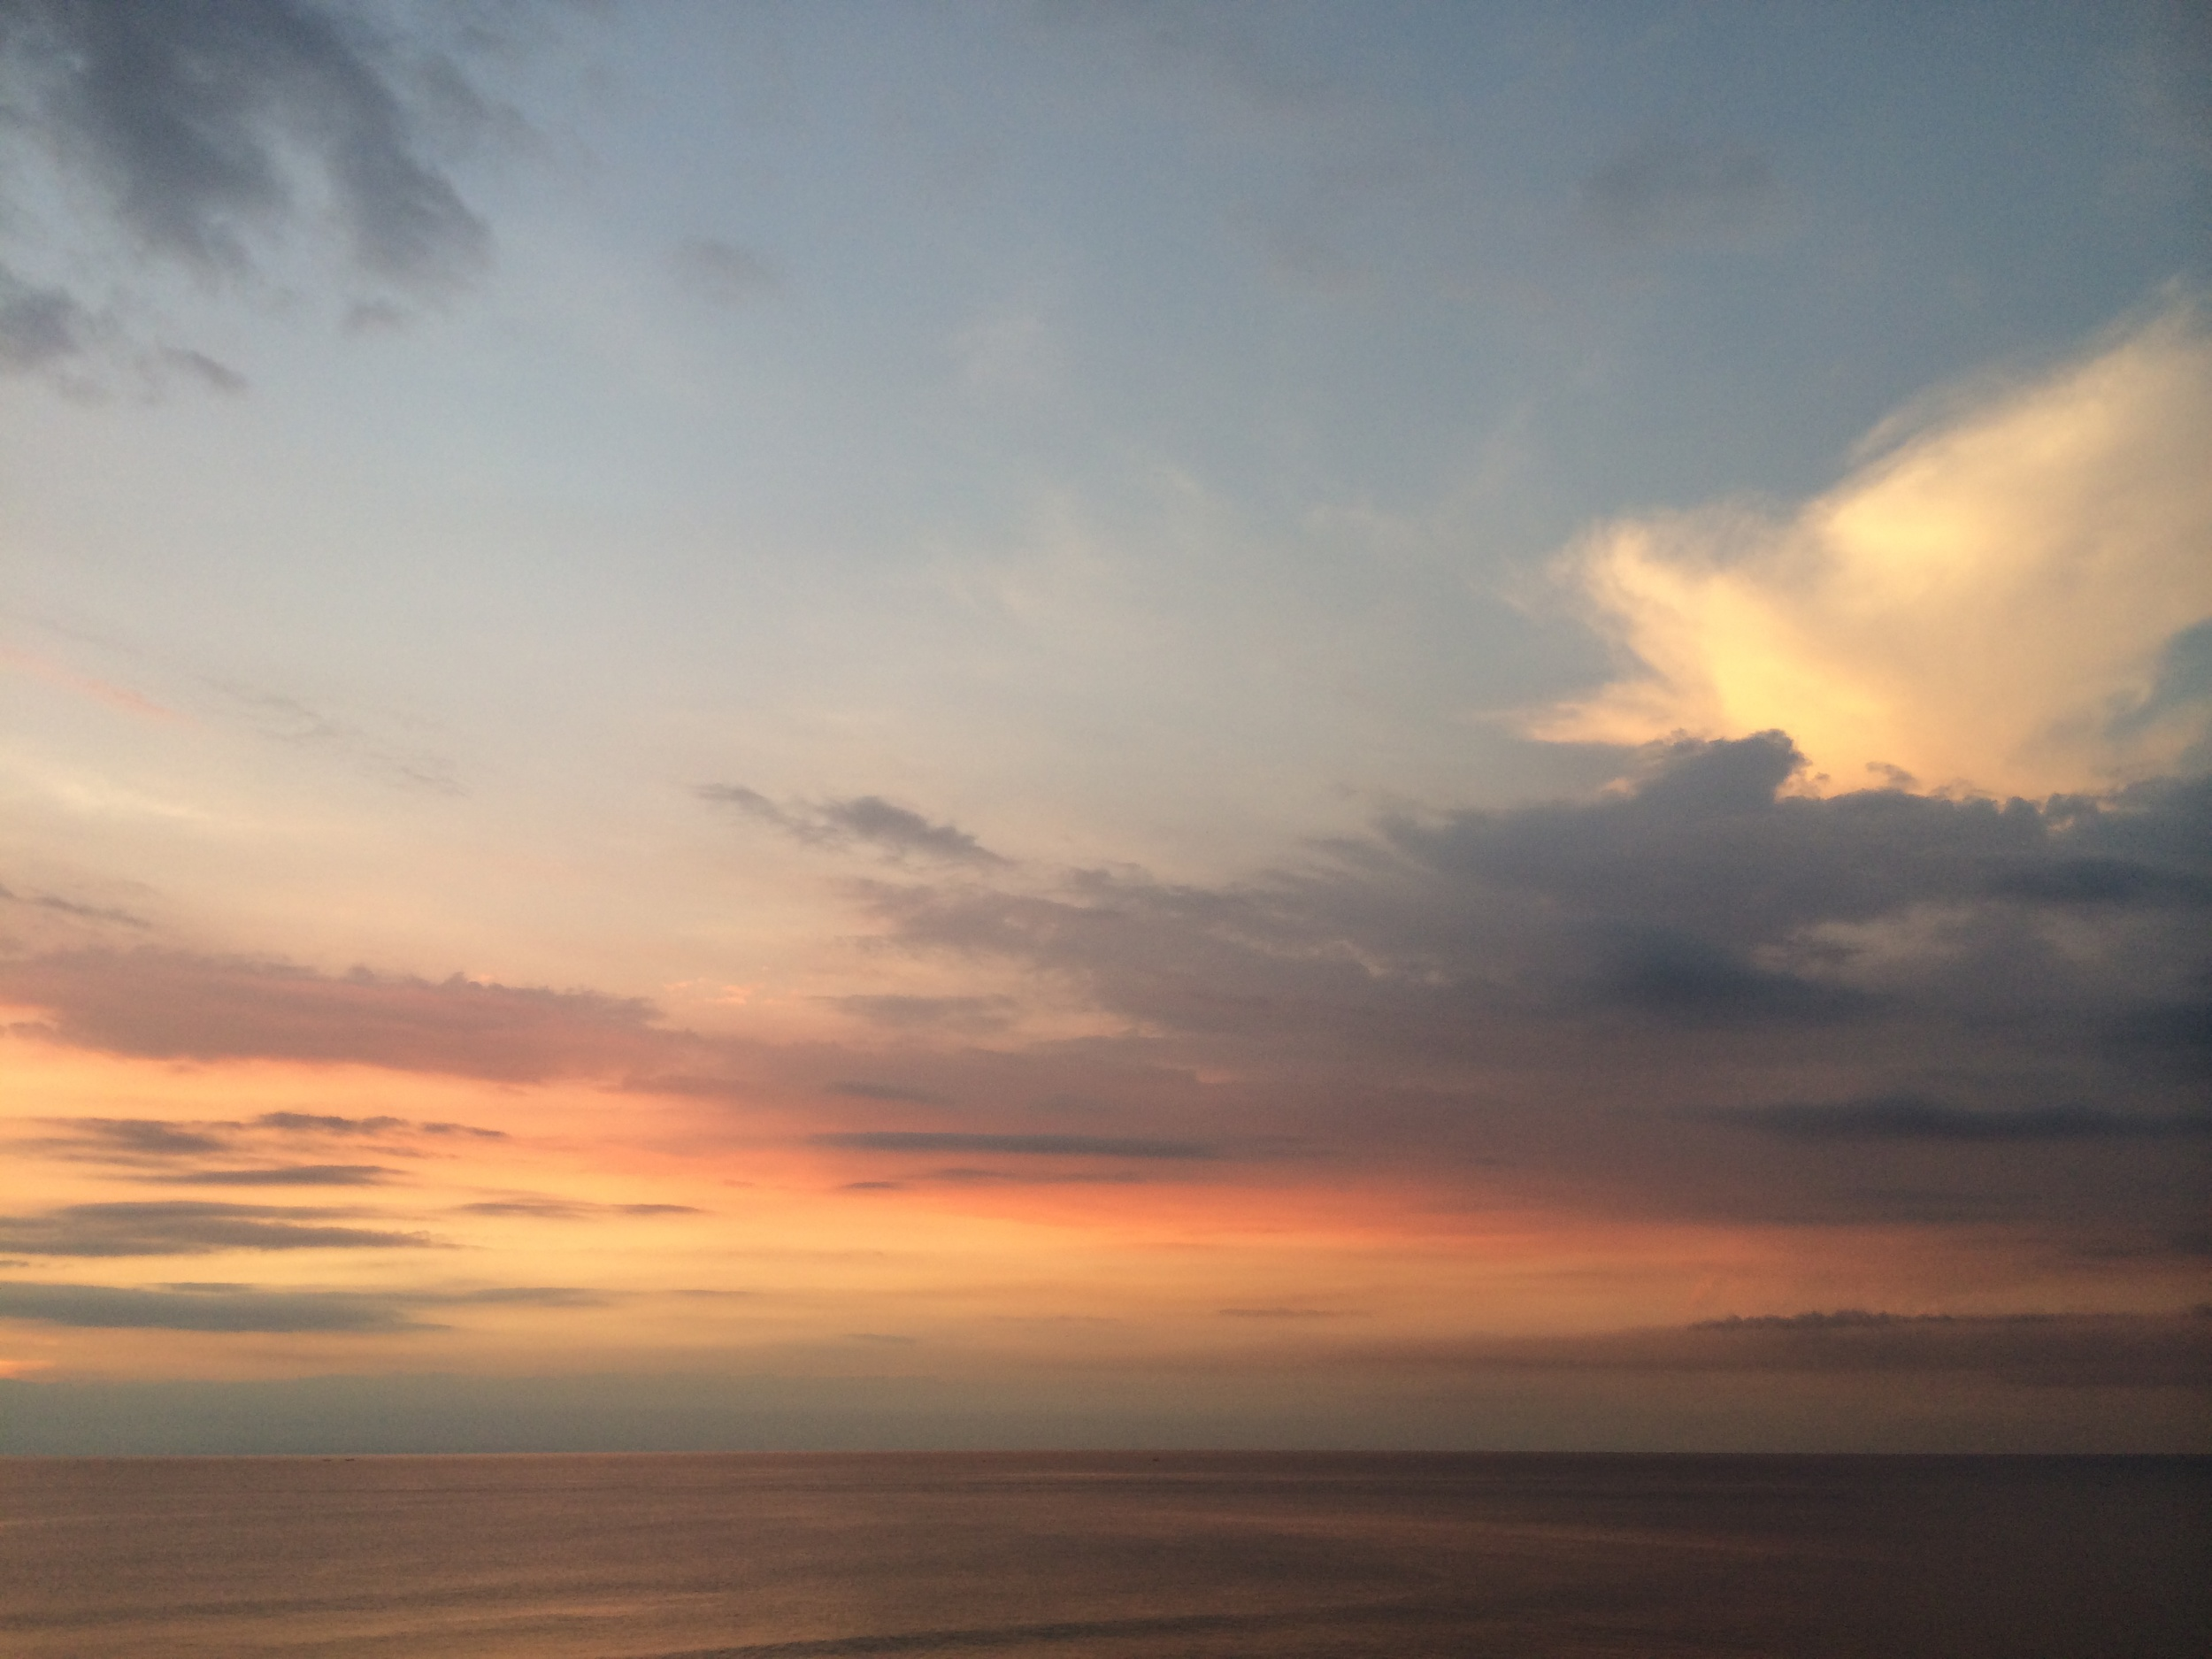 Sunset in Uluwatu, Bali - March 26 2014